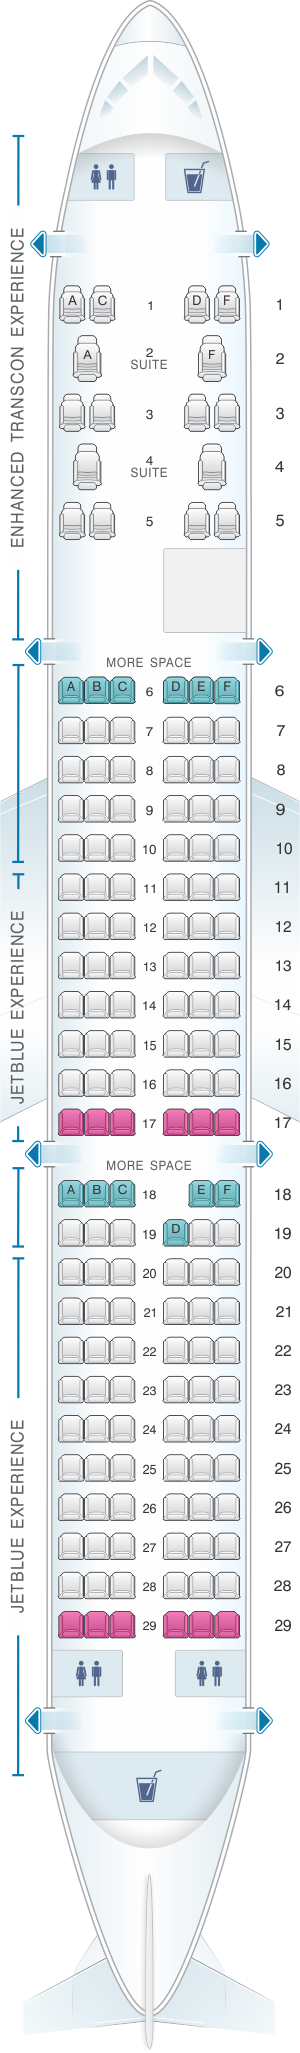 Seat Map JetBlue Airways Airbus A321 Config 2 ...